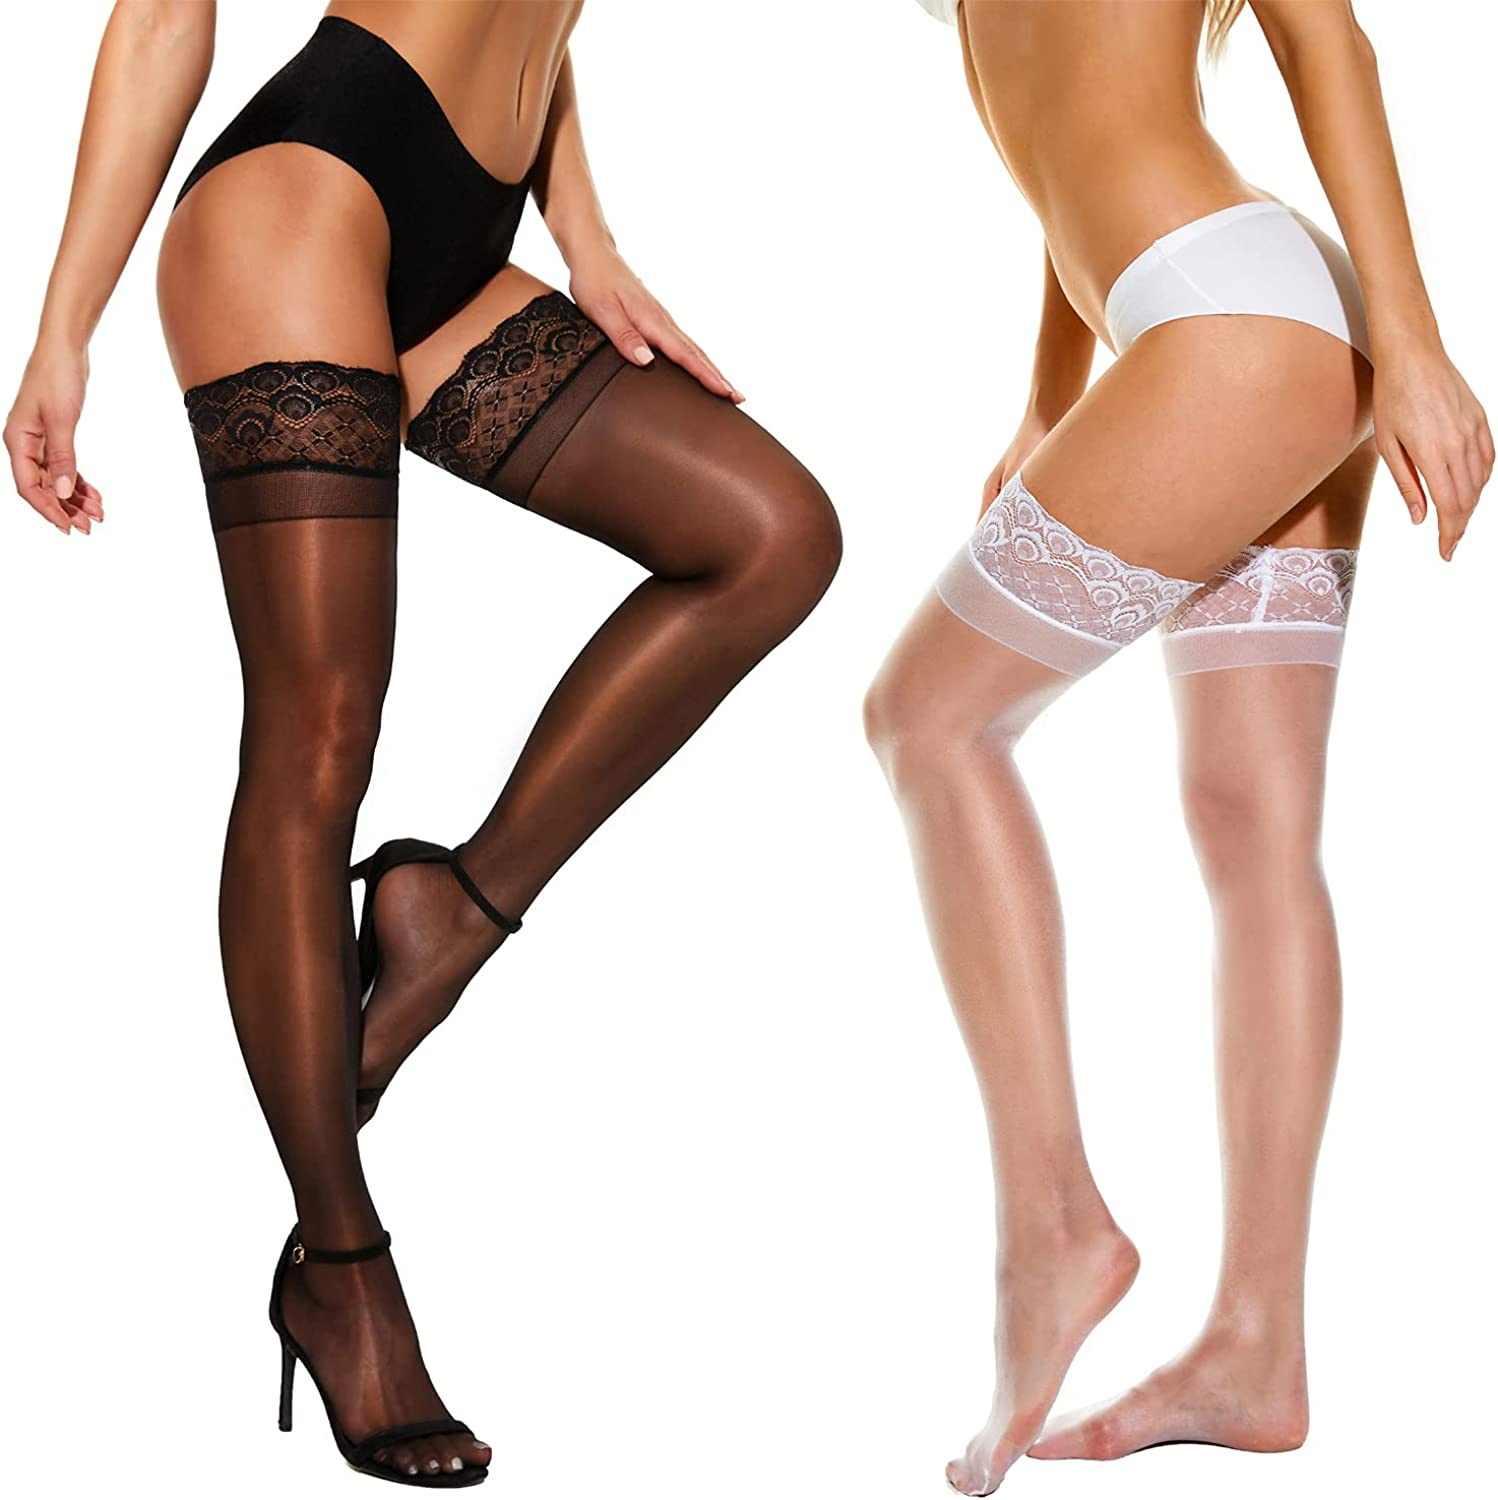 Jowimney Thigh HighStockings,Women's Sheerwith Silicone Lace Top,Shiny Stay Up lingerie Leggingsfor Women